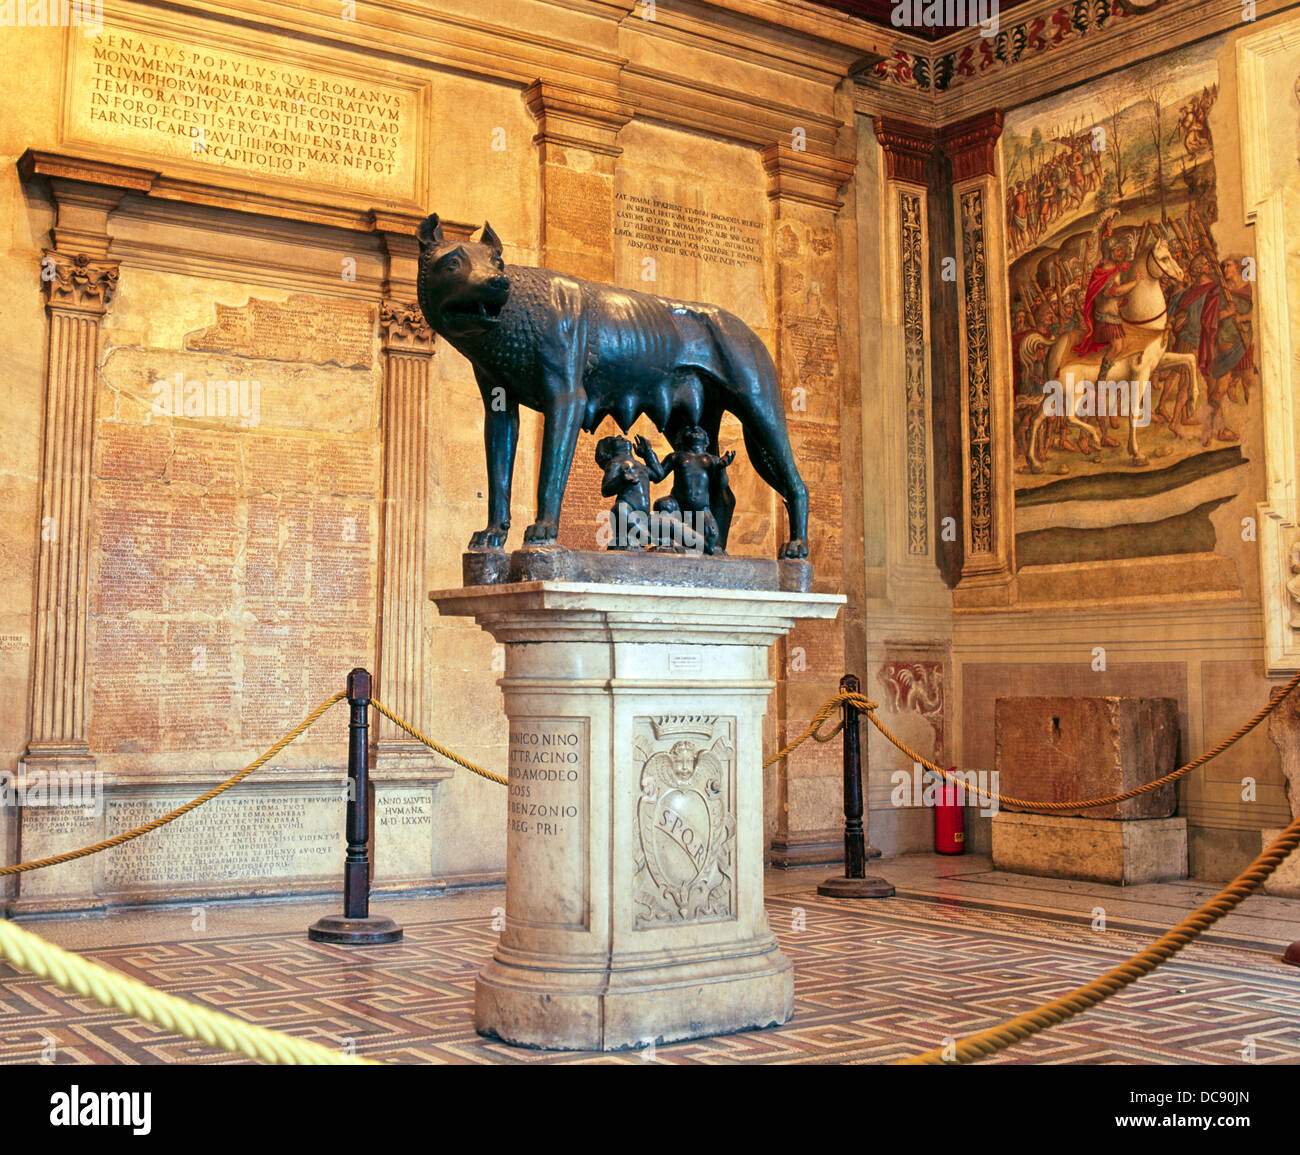 Bronze Statue Of Romulus And Remus Rome Italy - Stock Image